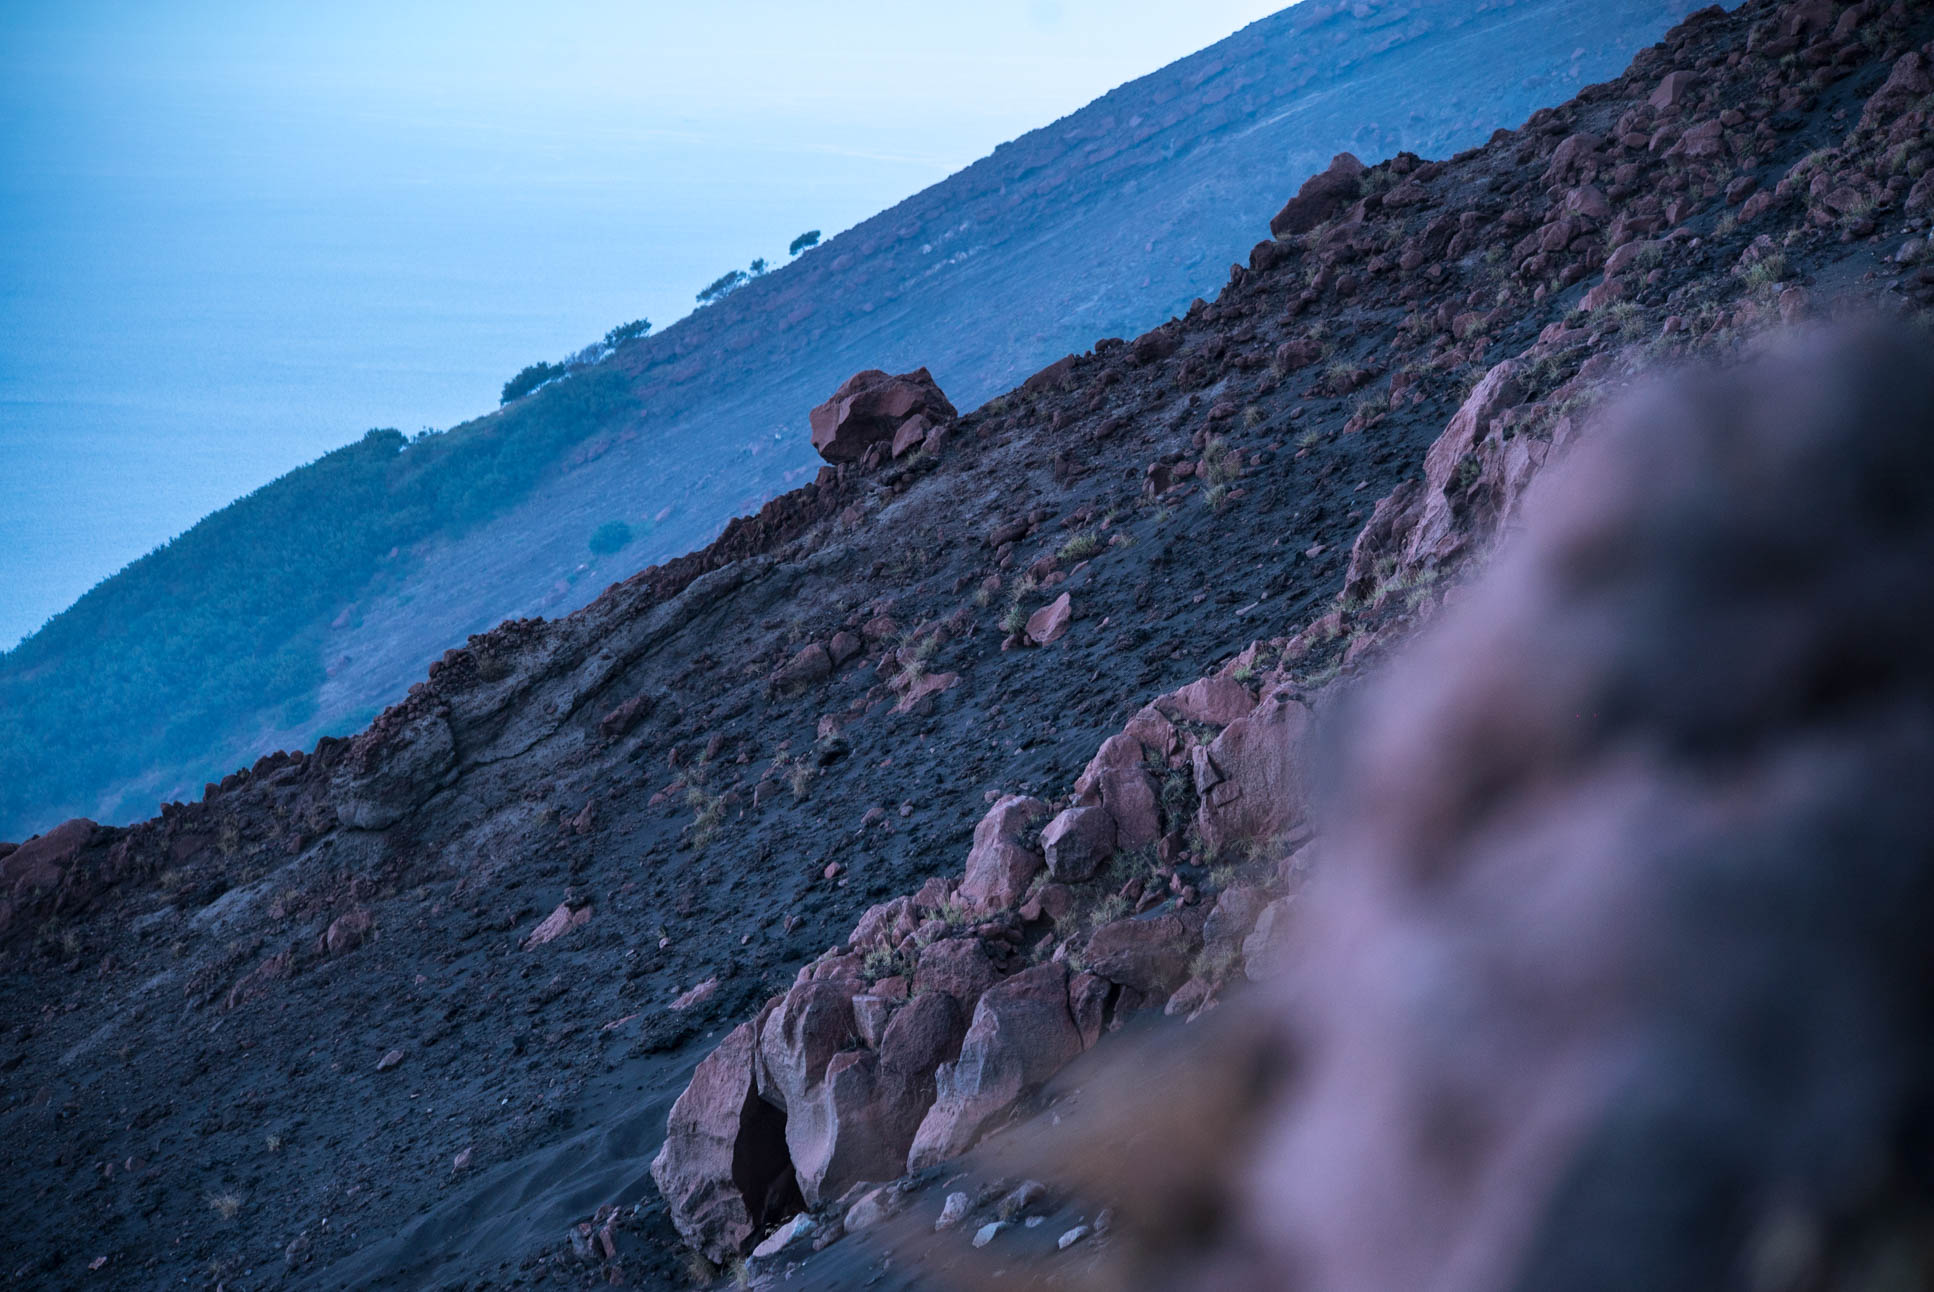 Photo by Pascal Sommer - Walking up towards the crater of Stromboli